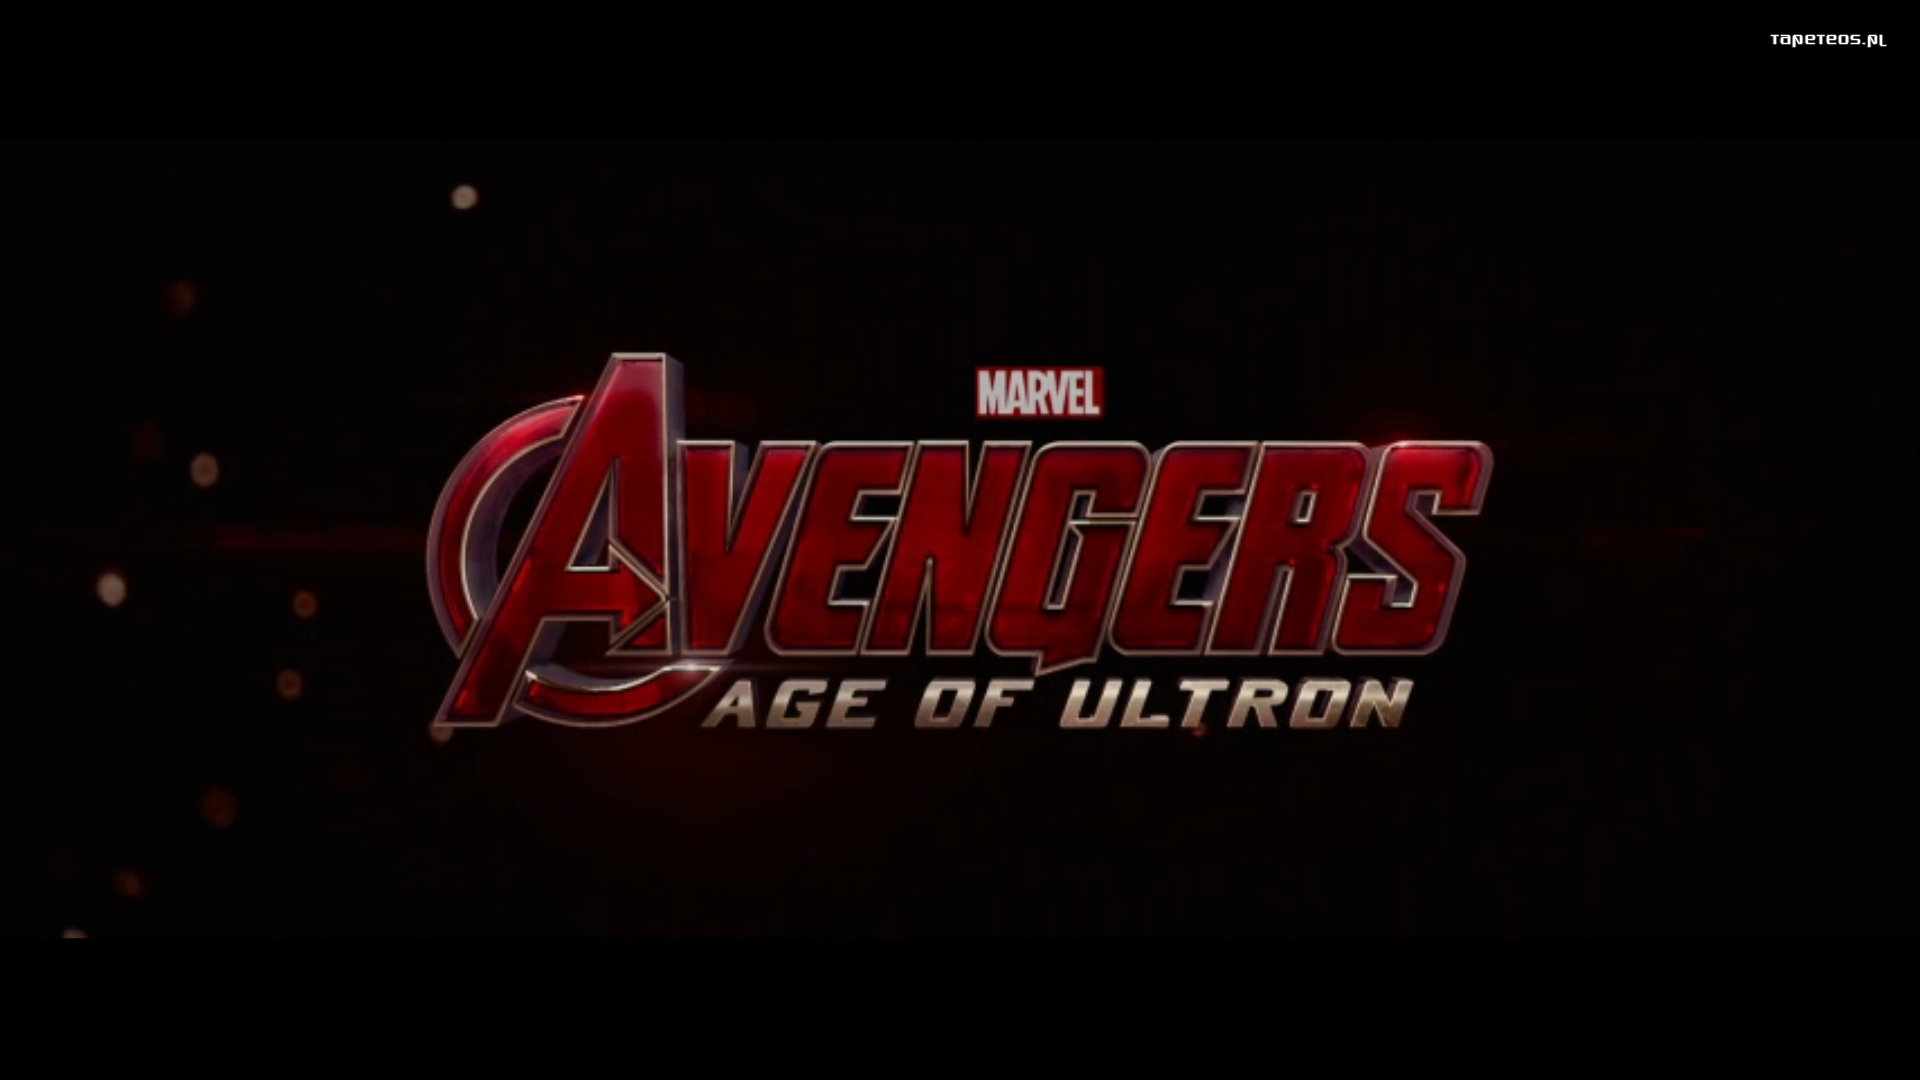 Avengers Age of Ultron 001 Logo